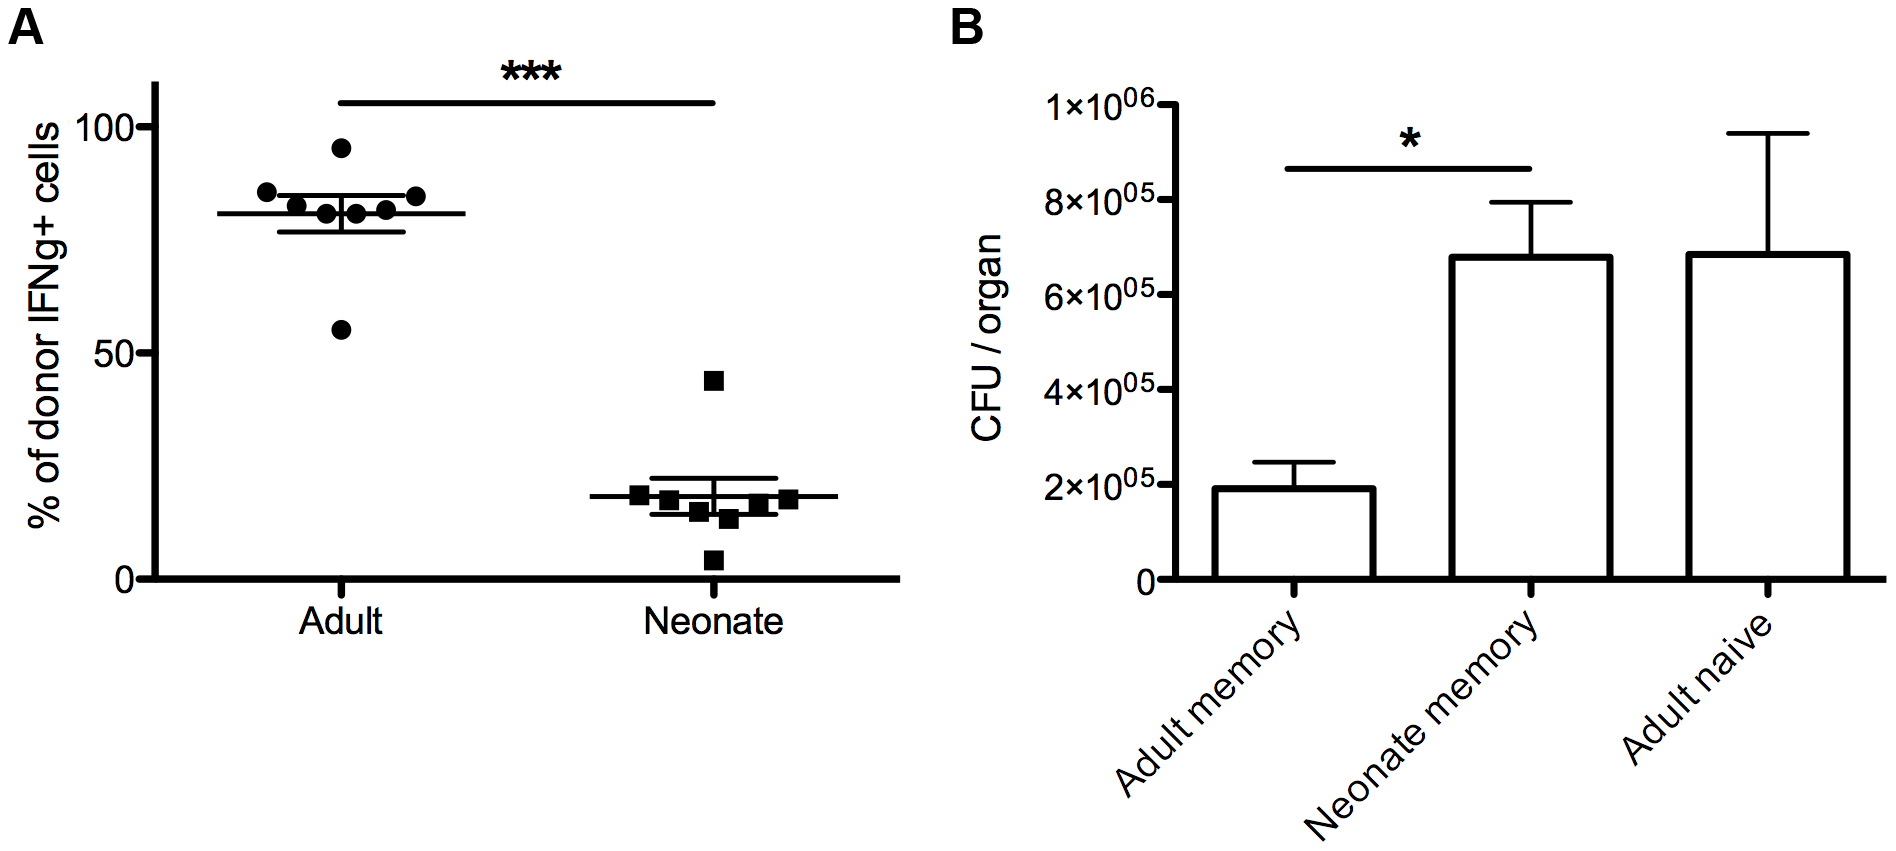 Memory CD8+ T cells from neonatal mice exhibit impaired protective immunity against <i>Listeria monocytogenes</i>.